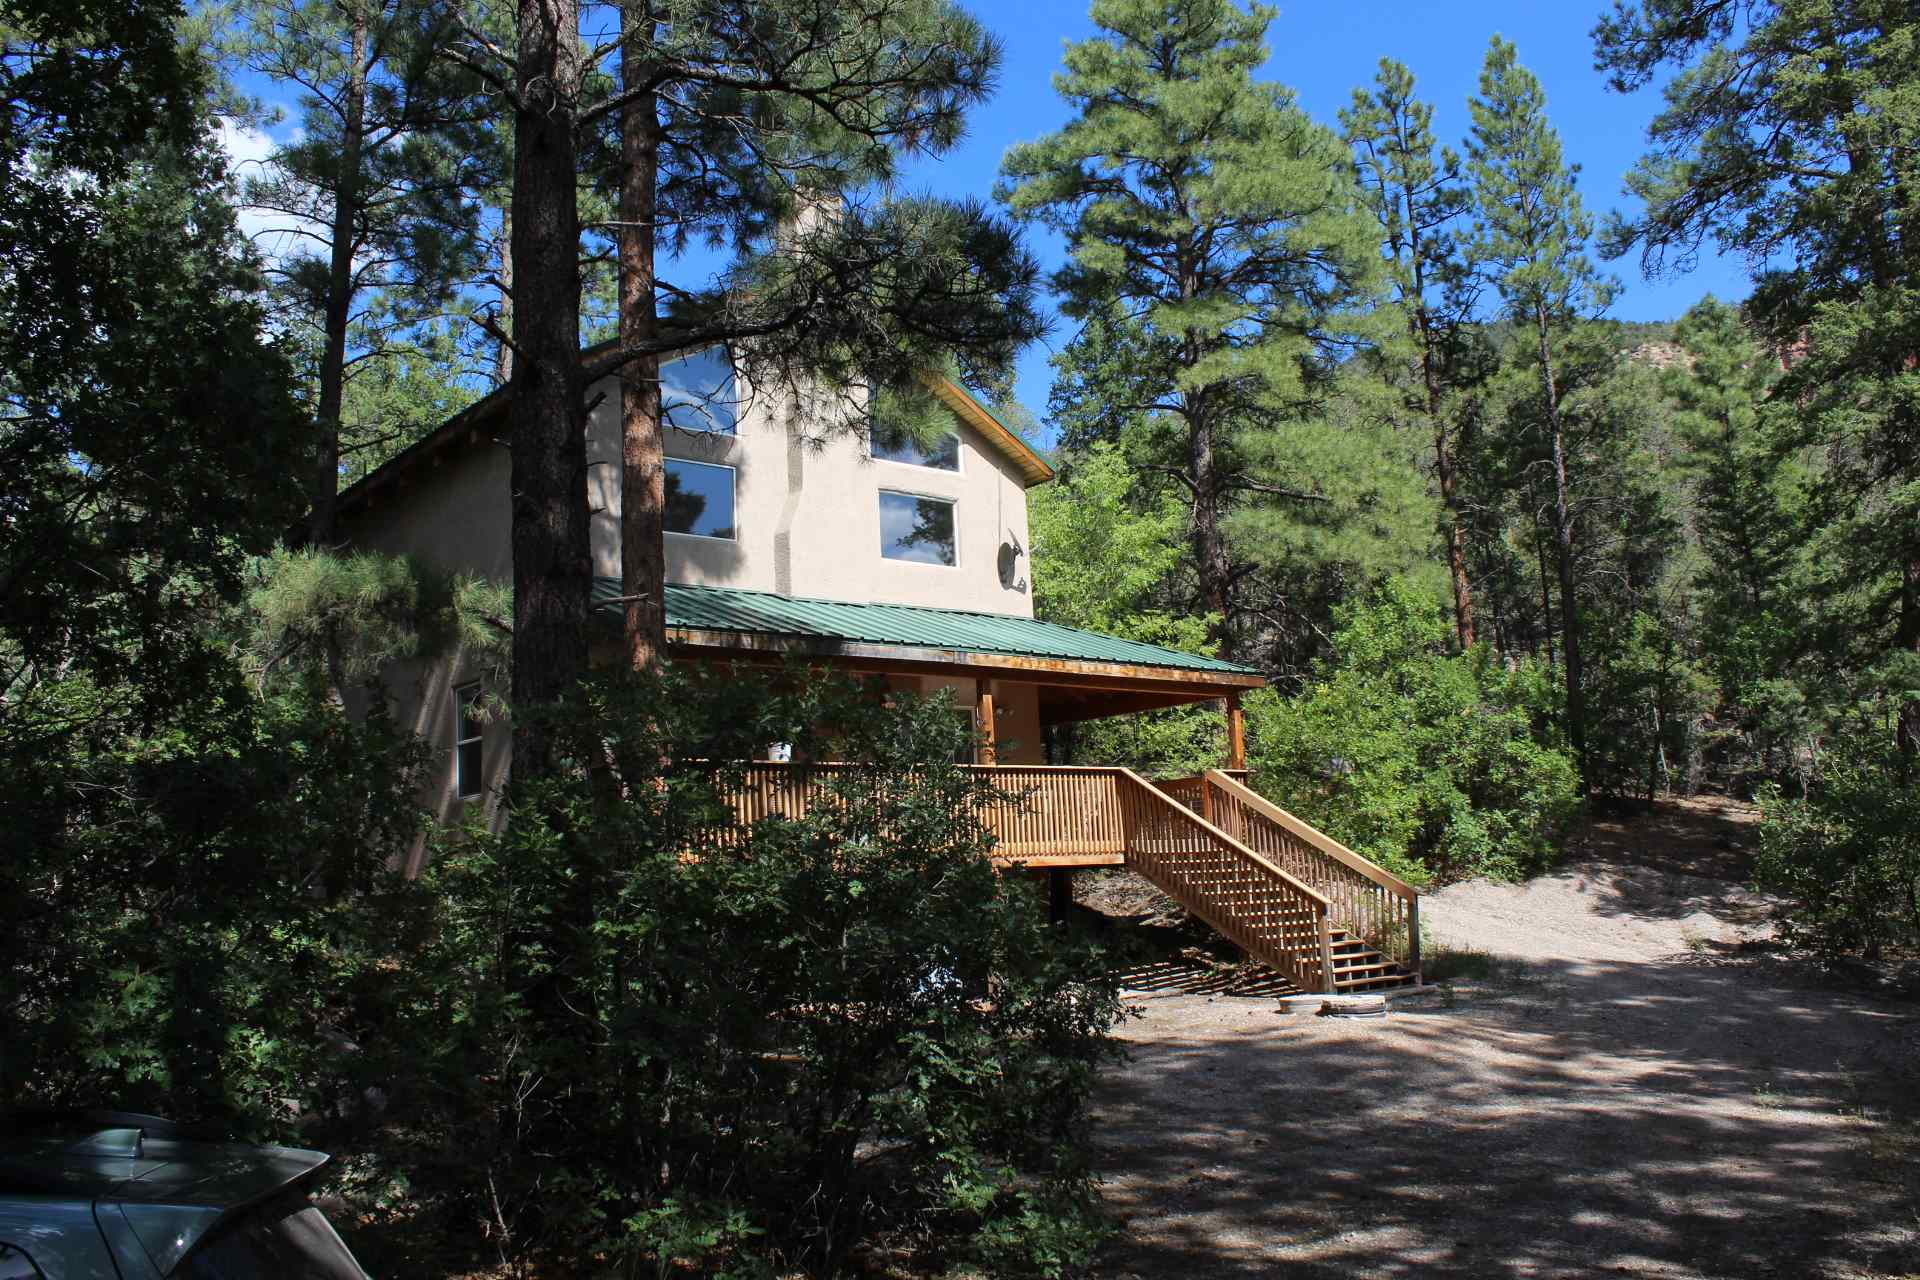 Now here is a listing to see and HEAR!! Nestled right down along the Jemez River. With OVER 300 FEET of RIVER FRONTAGE the sound of the river will ABSOLUTELY become a delightful part of every day and every night!! Spacious open living area has floor to ceiling windows and 2 sets of sliders to the covered composite deck. Well arranged, efficient kitchen has a great eat-at bar. Good-sized bedroom, Office and full bath on lower level. Upper level is HUGE master with comfy sitting area, full-bath & large walk-in closet. Loft is a fun den/rec room, work/office or craft area. 1.1 acre lot is nicely forested with trails and plenty of hammock and gazebo spots! City water and county maintained road. There aren't too many available with this kind of amazing river frontage!! Don't let this one slip away!